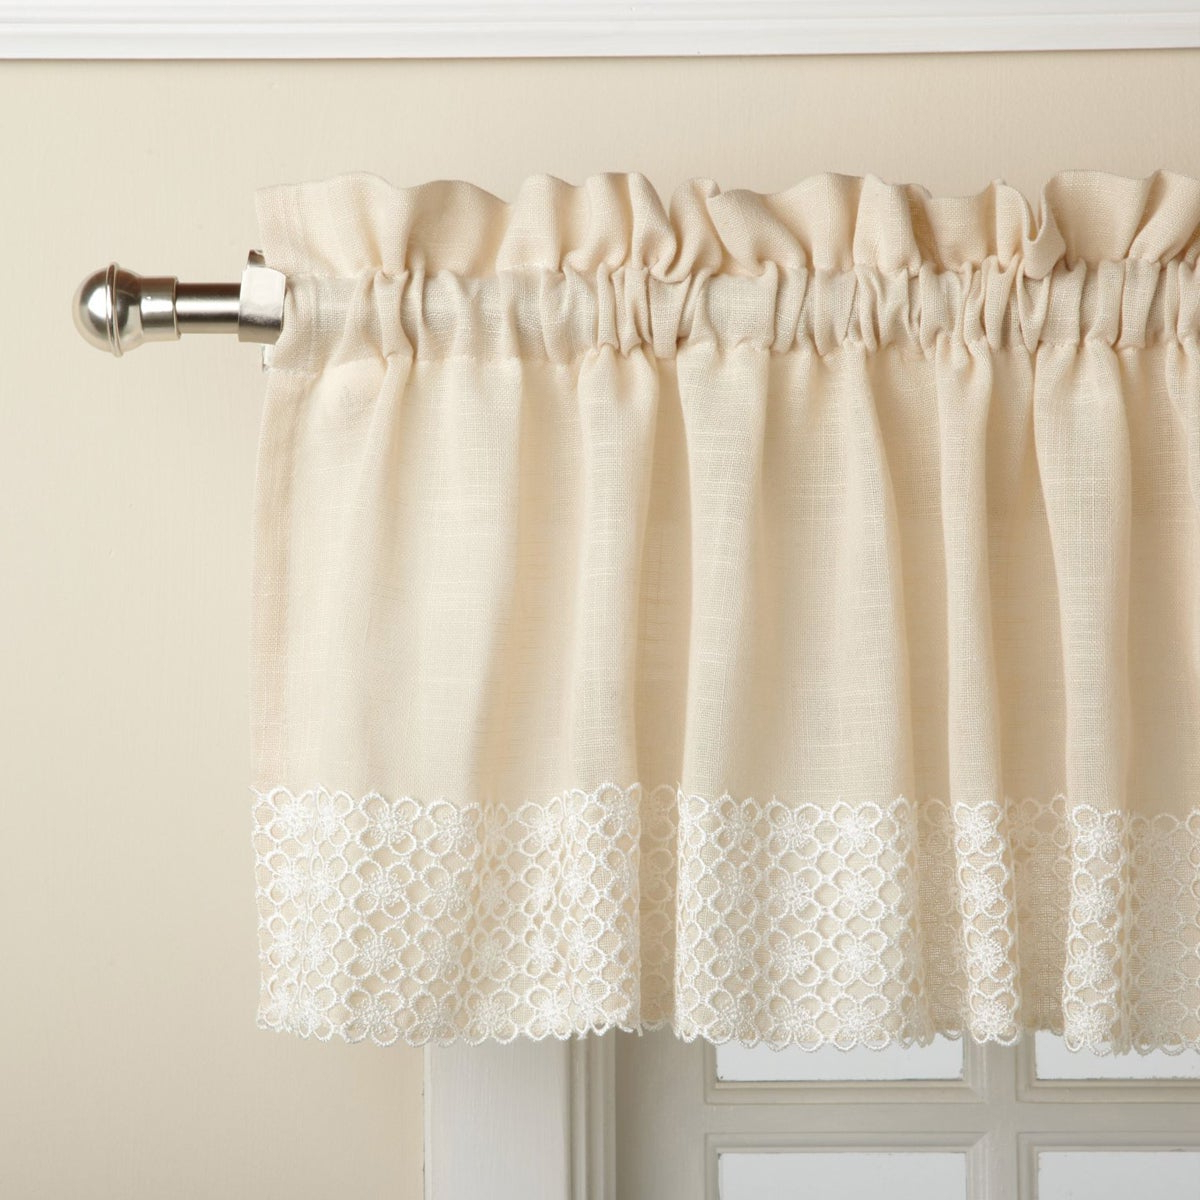 French Vanilla Country Style Curtain Parts With White Daisy Lace Accent Inside Well Liked French Vanilla Country Style Curtain Parts With White Daisy Lace Accent   Tier, Swag And Valance Options (View 6 of 20)